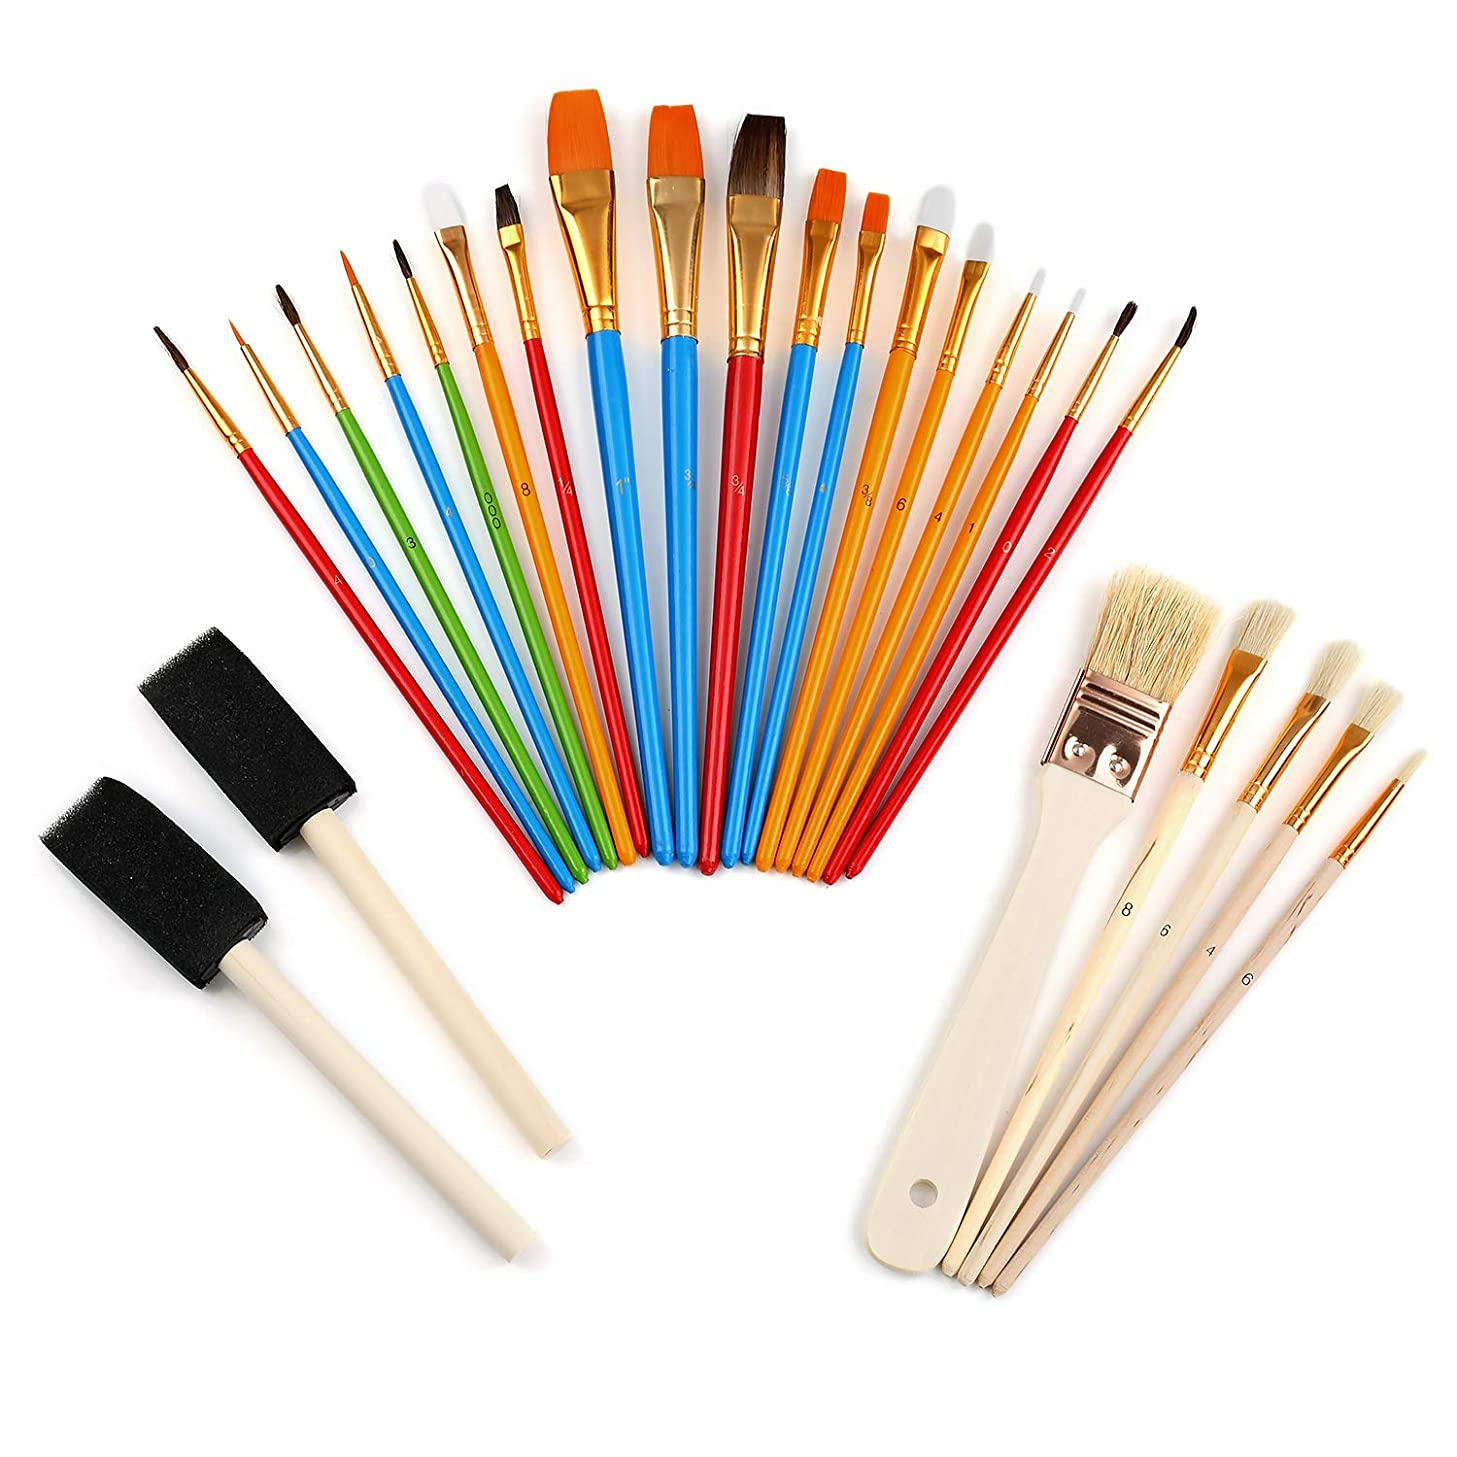 25 Pcs Round Pointed Tip Nylon Hair Brush Set Oil Brush Set Painting Pen Watercolor Acrylic Oil Painting Supplies